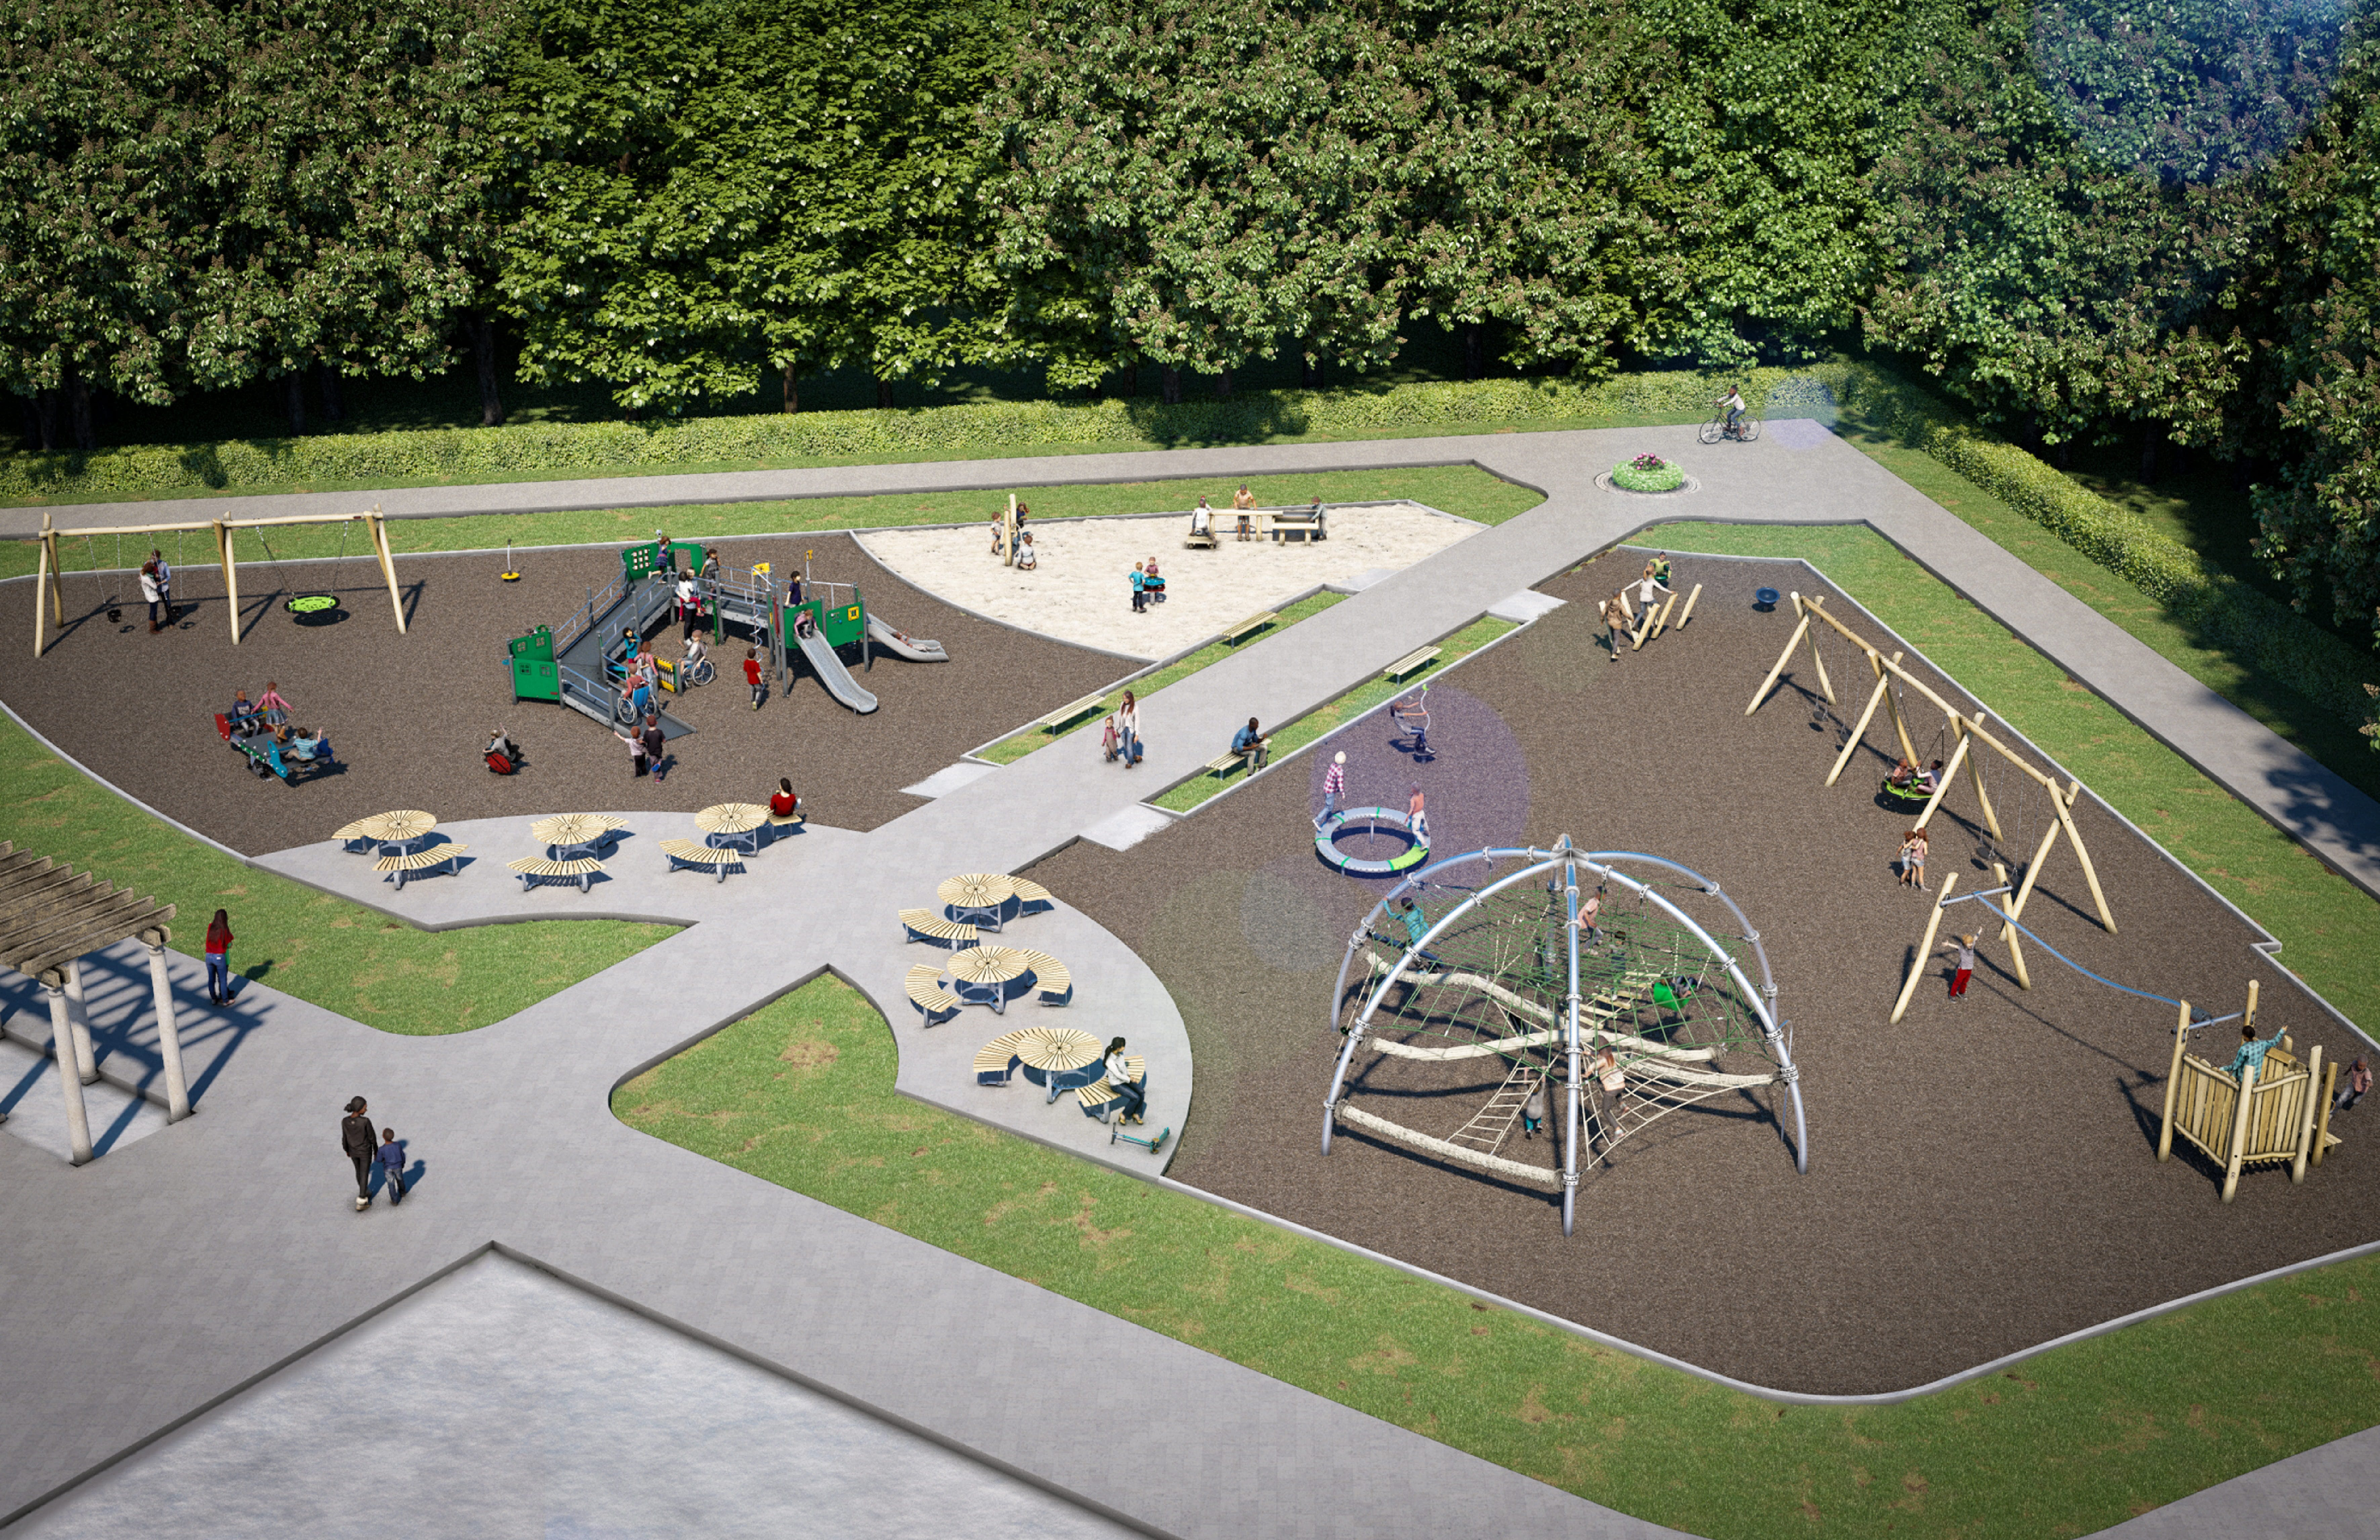 Playground A: All Play Areas